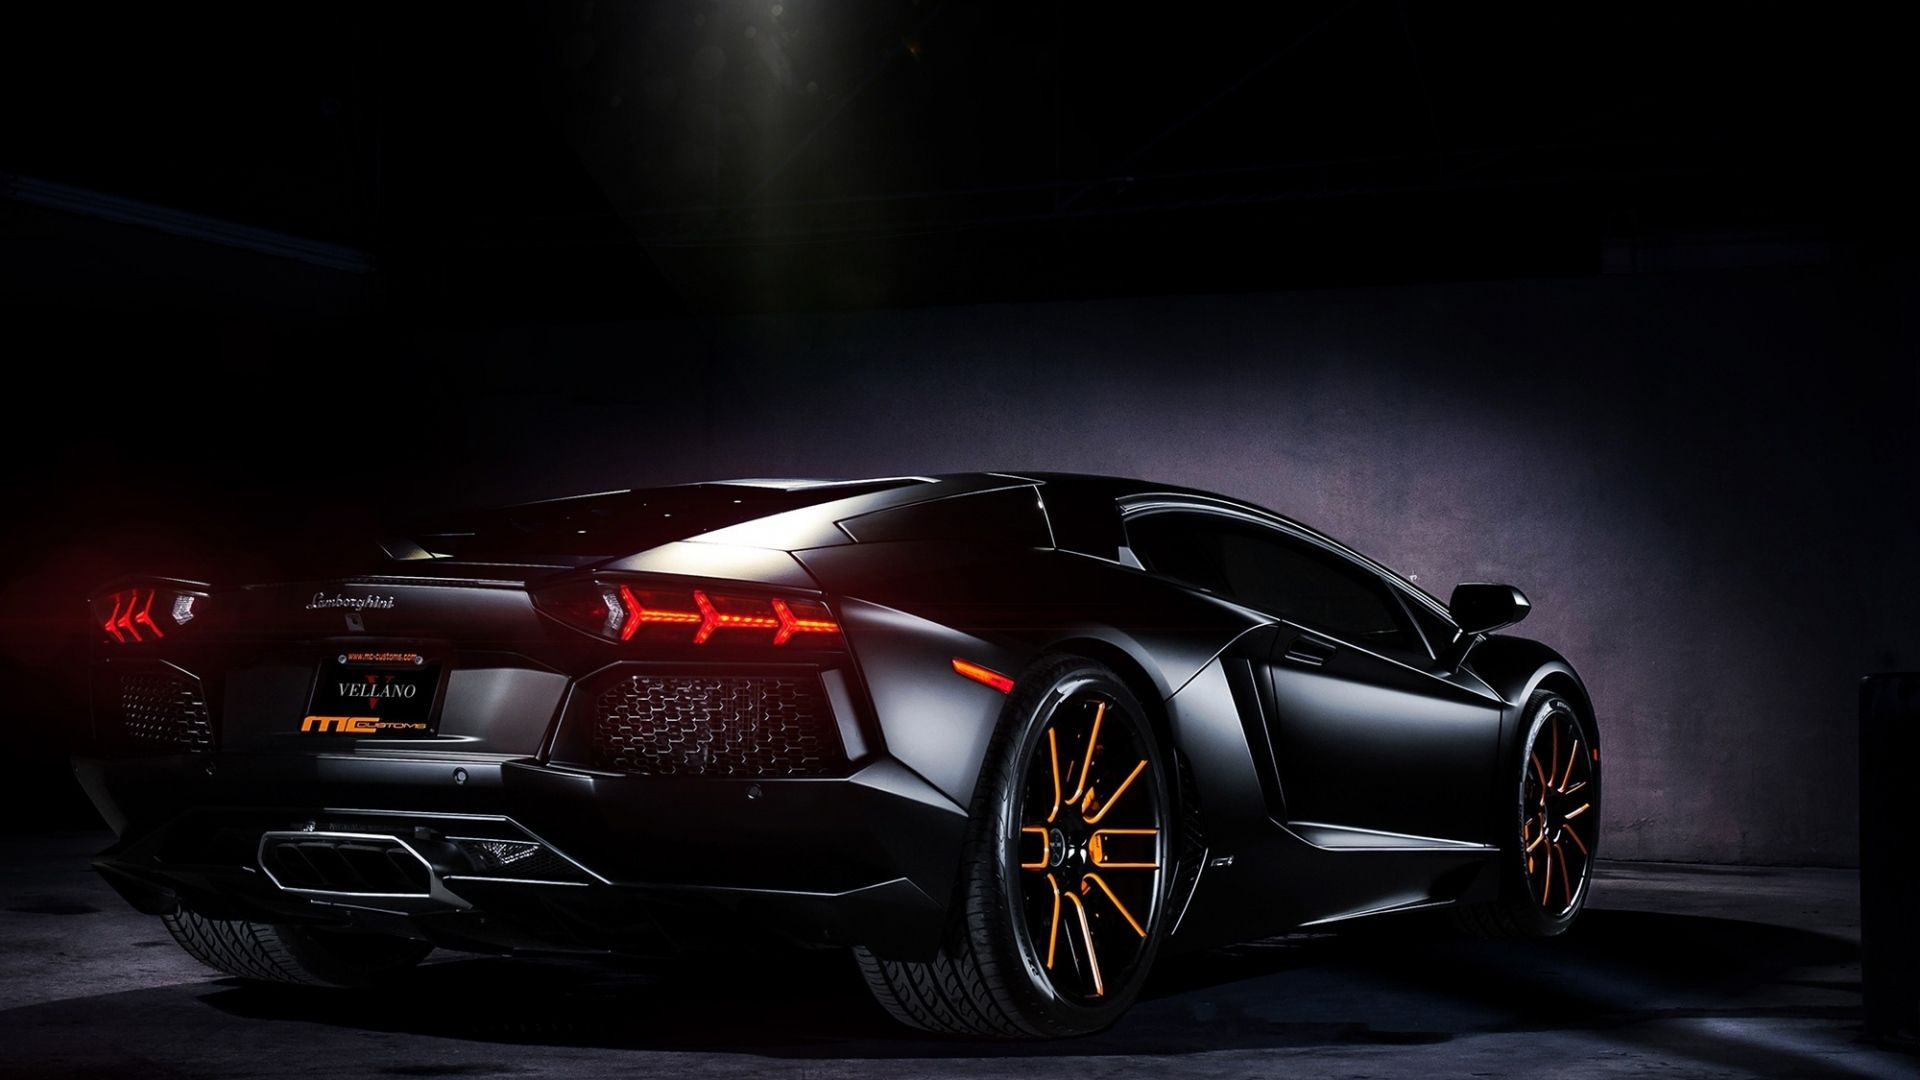 Black Lamborghini Aventador Hd Wallpaper Night Corvette